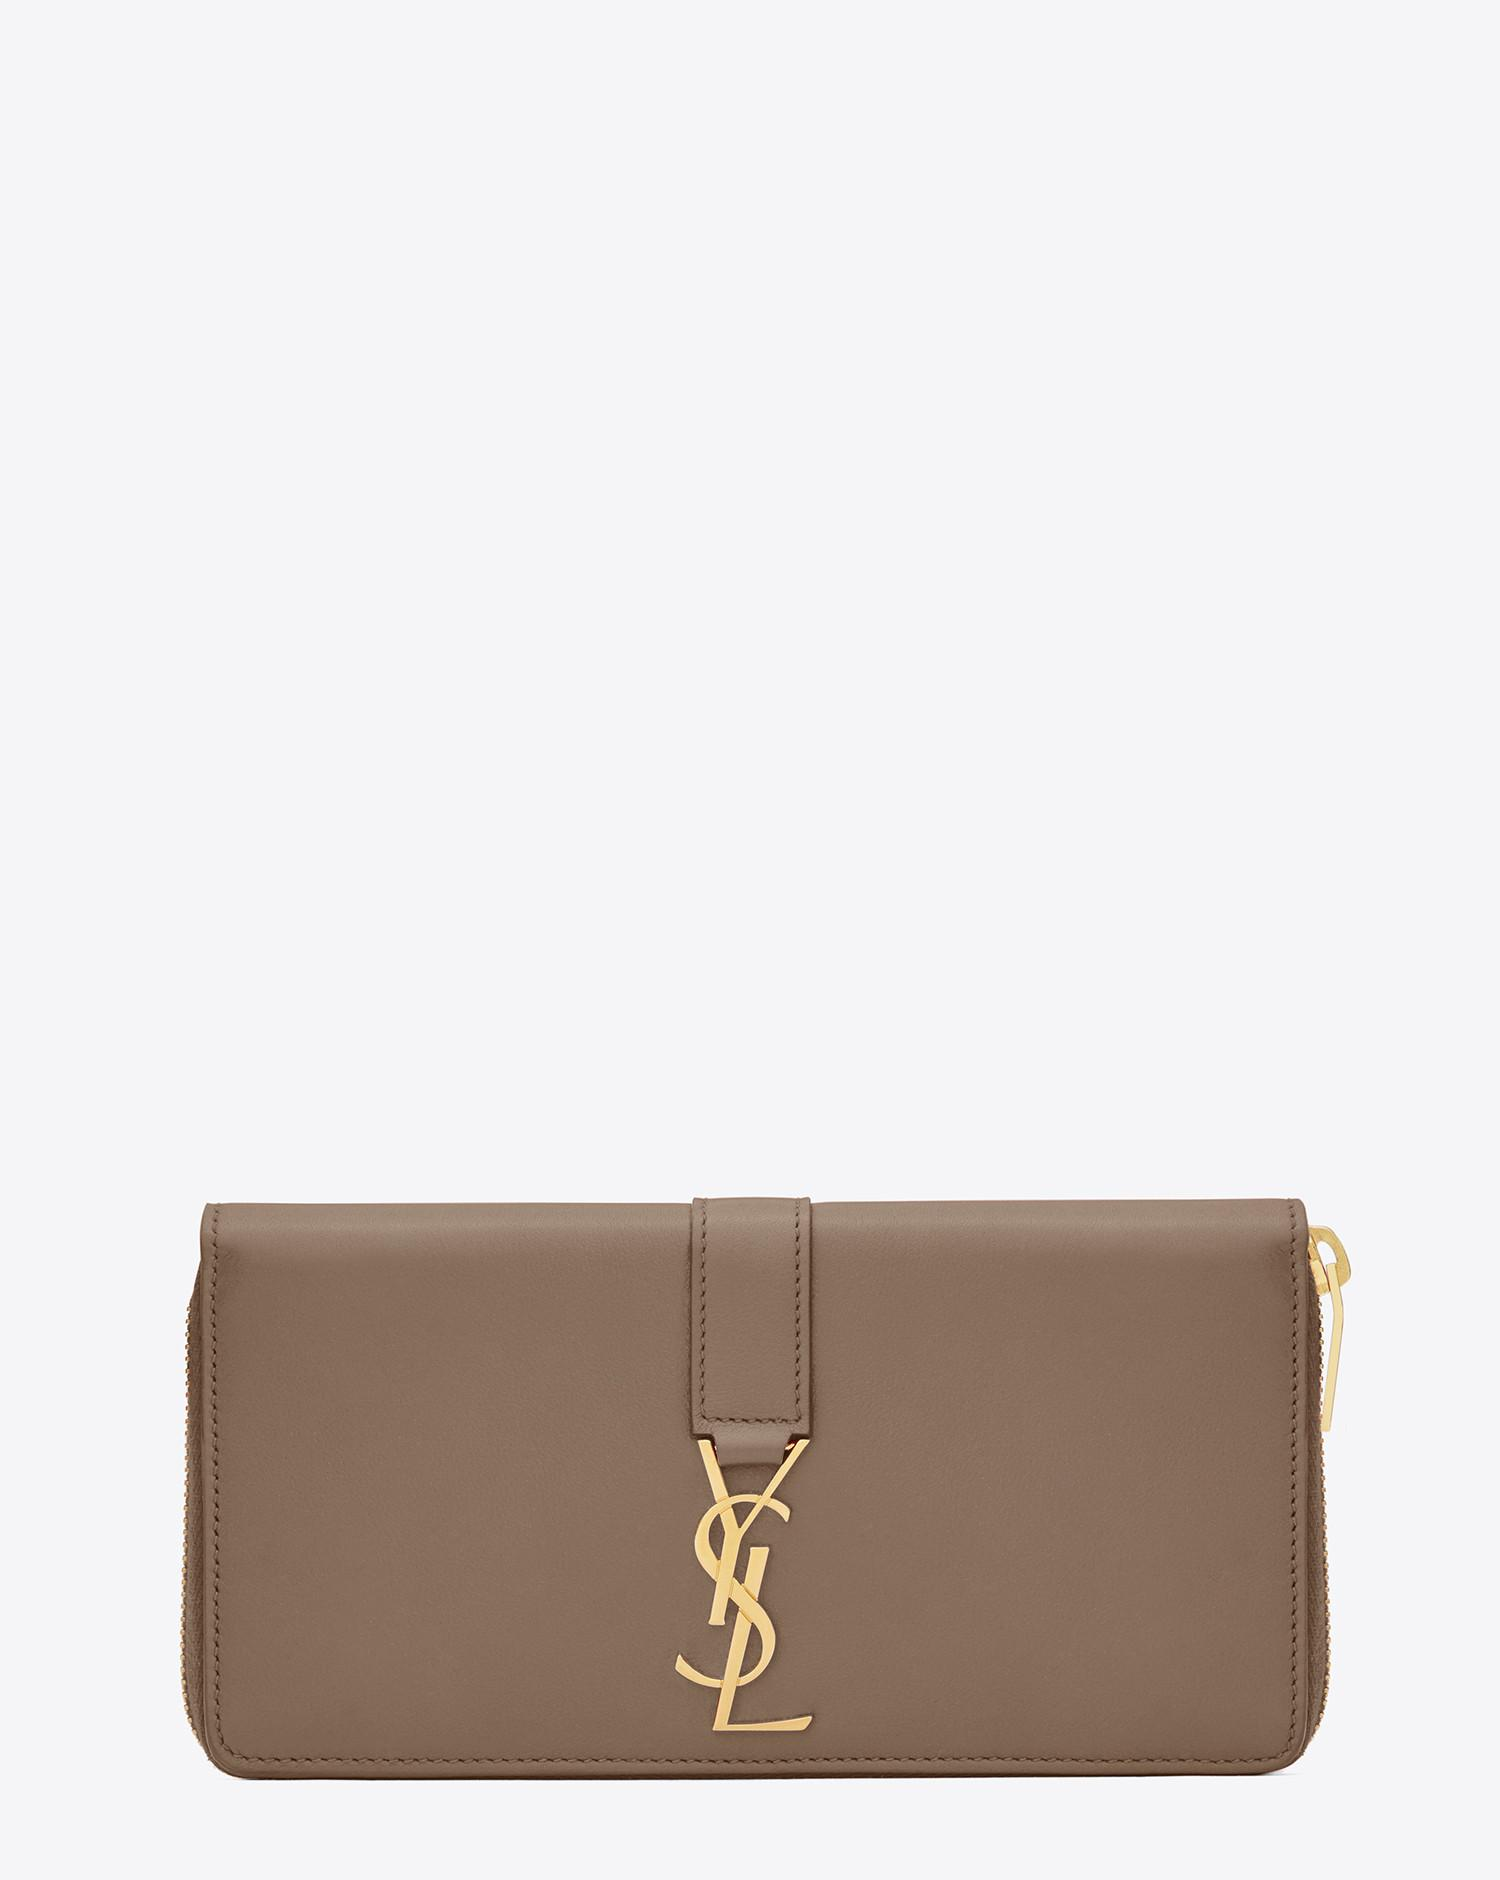 81e675dc204 Saint Laurent Ysl Zip Around Wallet In Taupe Leather in Brown - Lyst